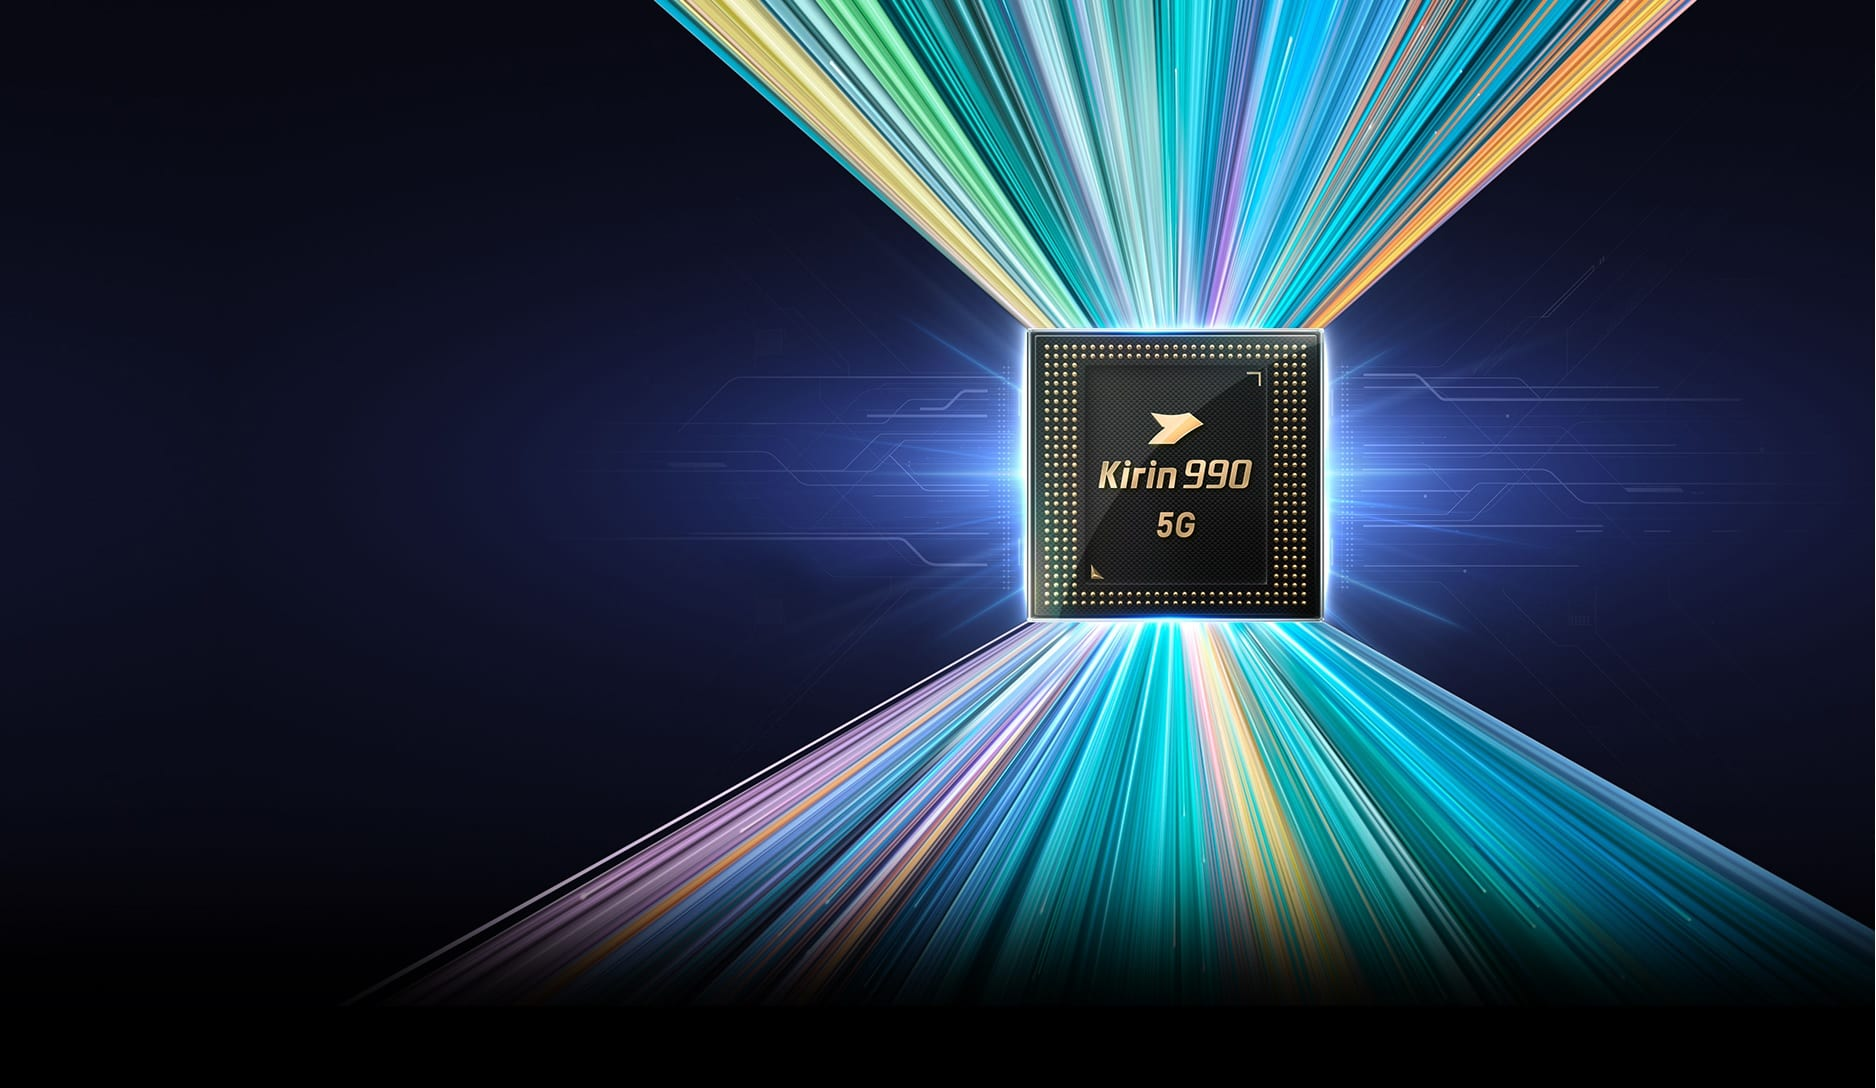 The high-end processor that brings 5G is now official